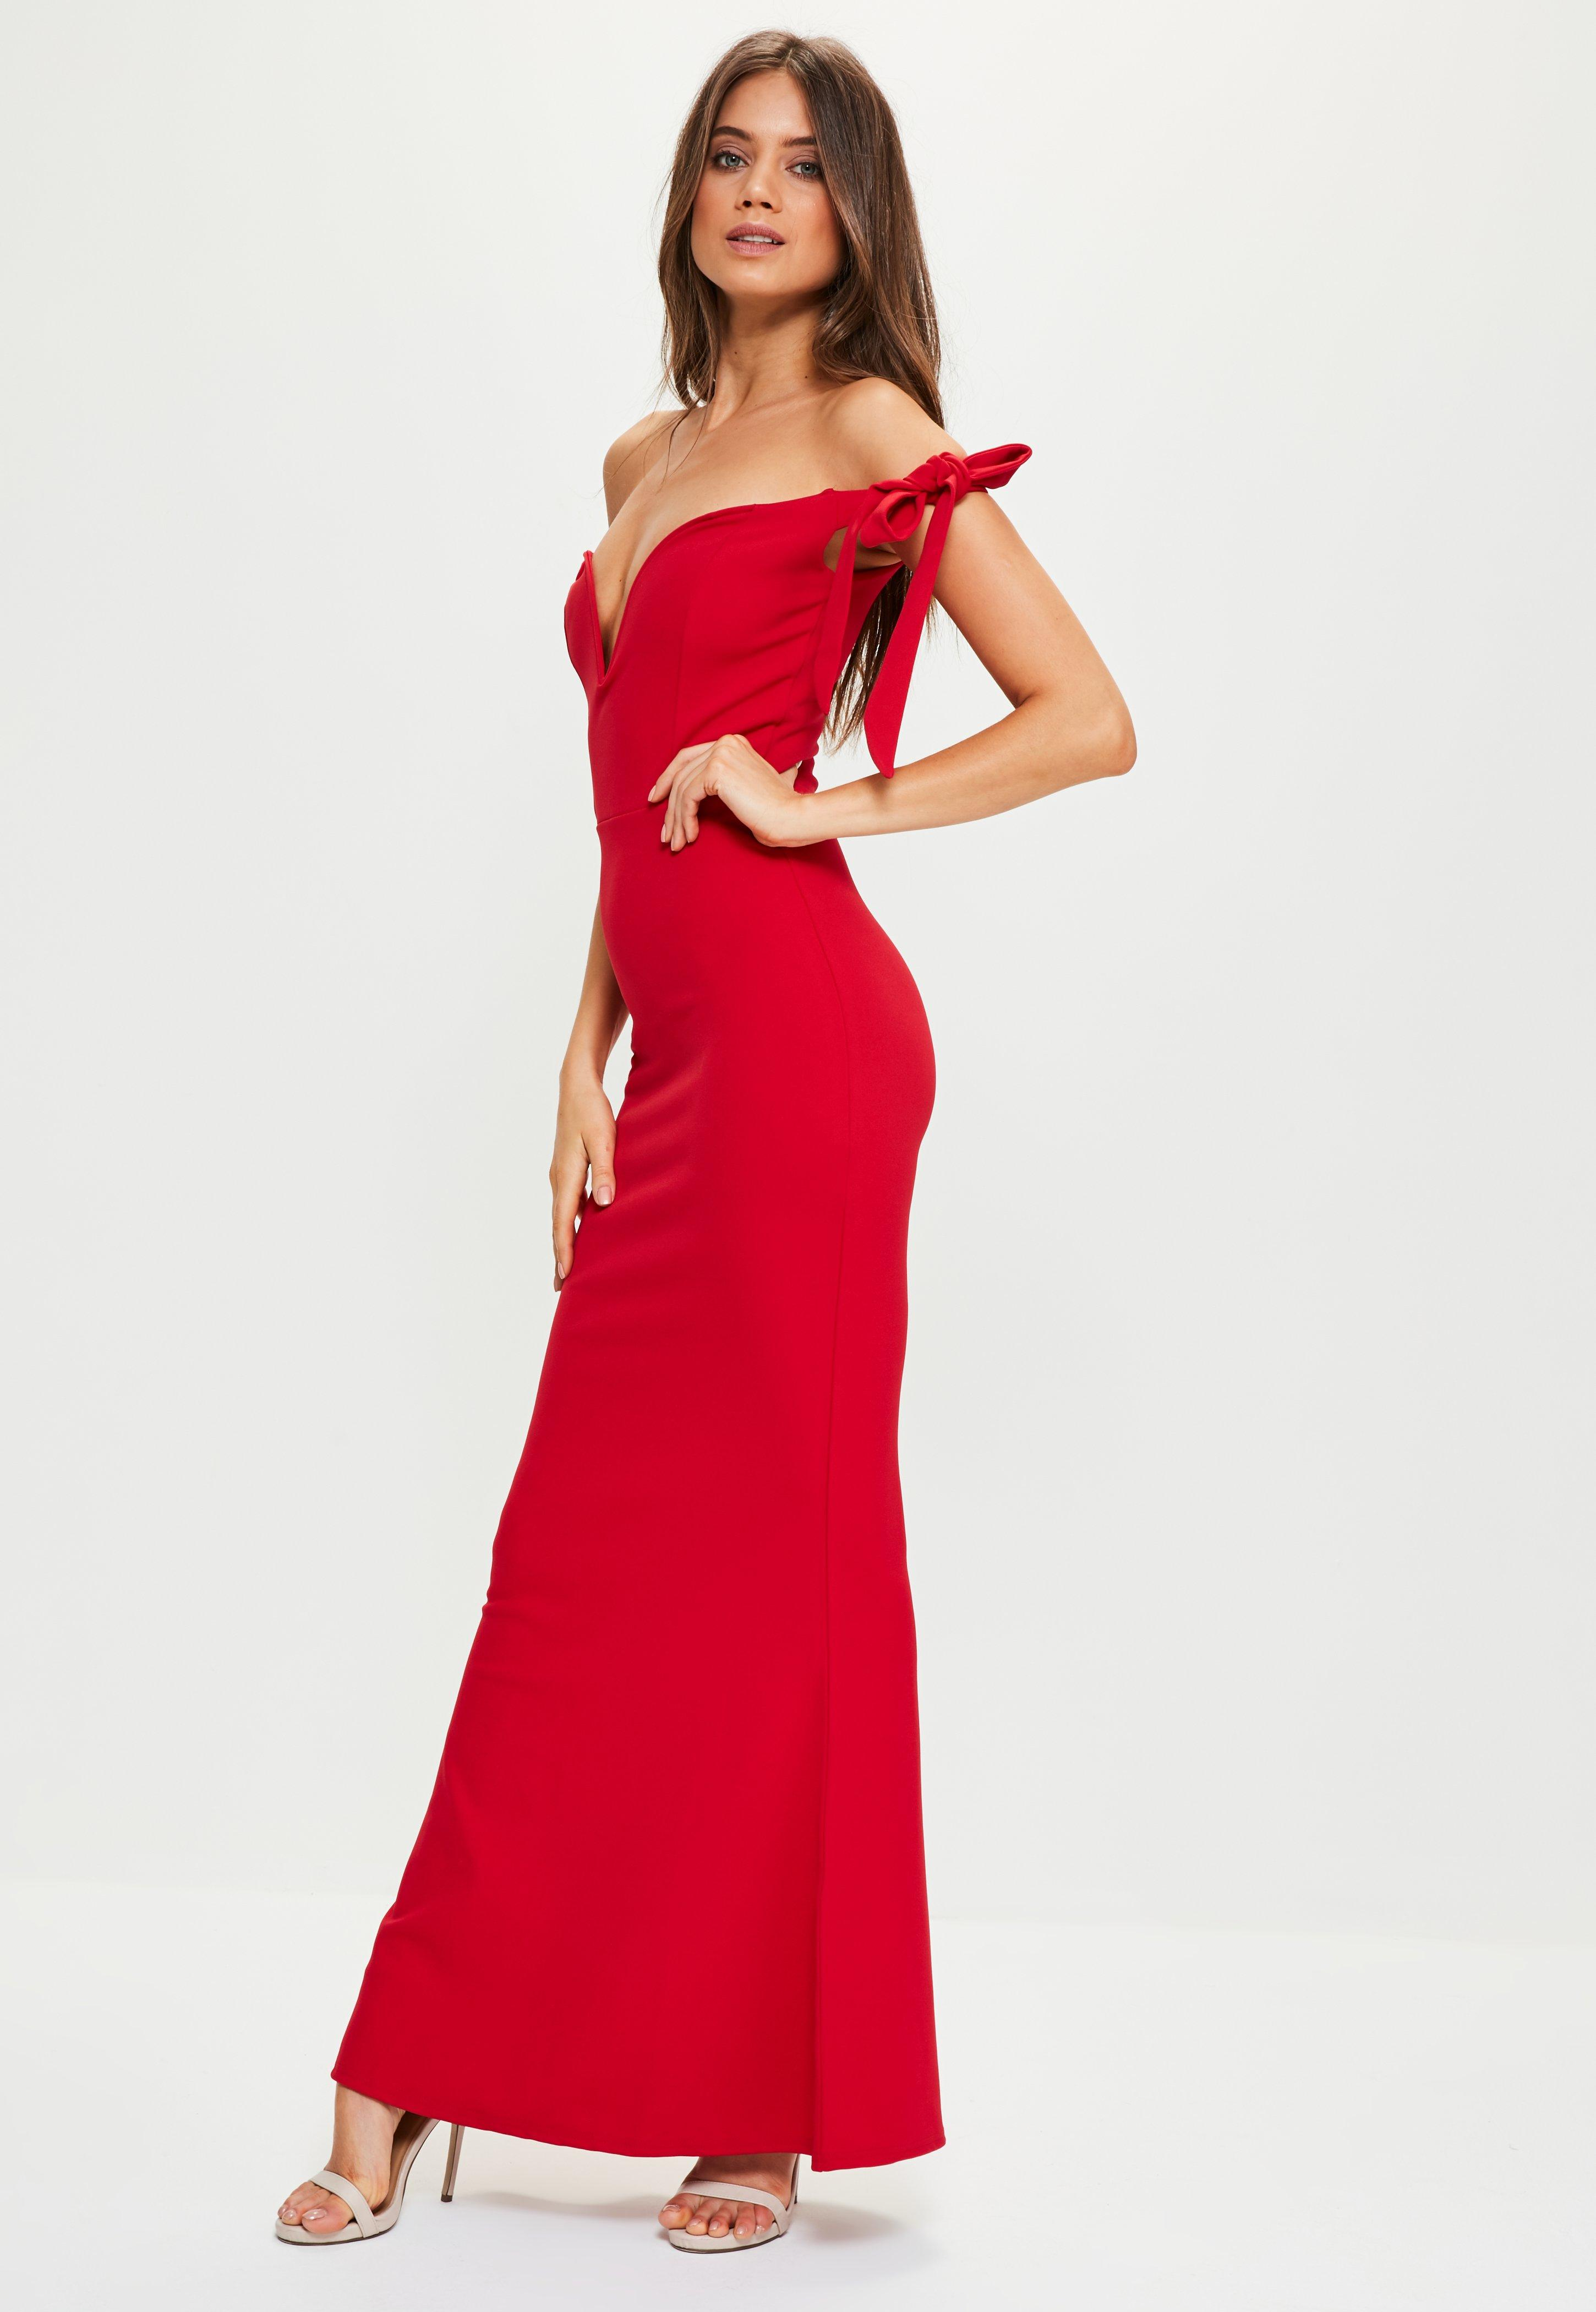 Wedding Sweetheart Neckline Dress red sweetheart neck bardot tie maxi dress missguided previous next